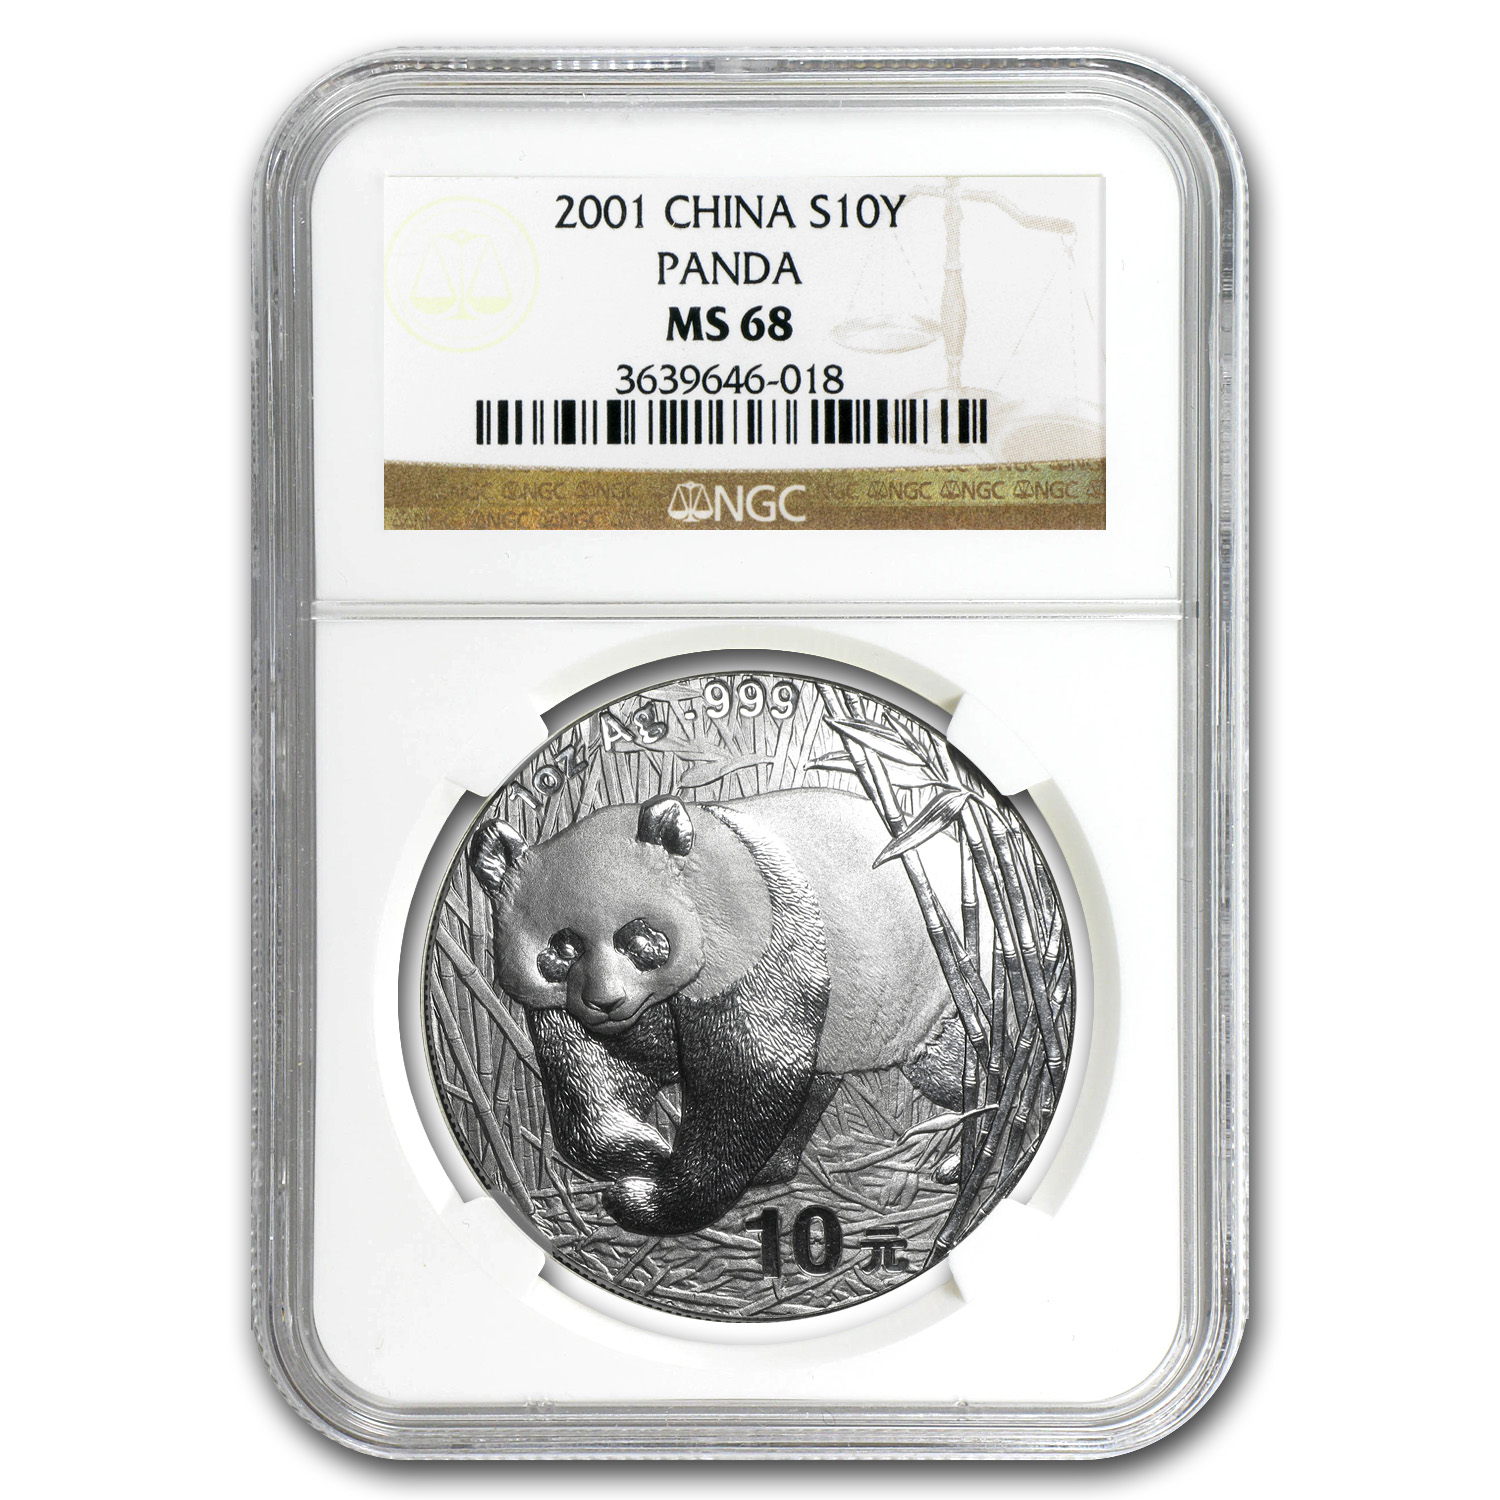 2001 Silver Chinese Panda 1 oz - MS-68 NGC